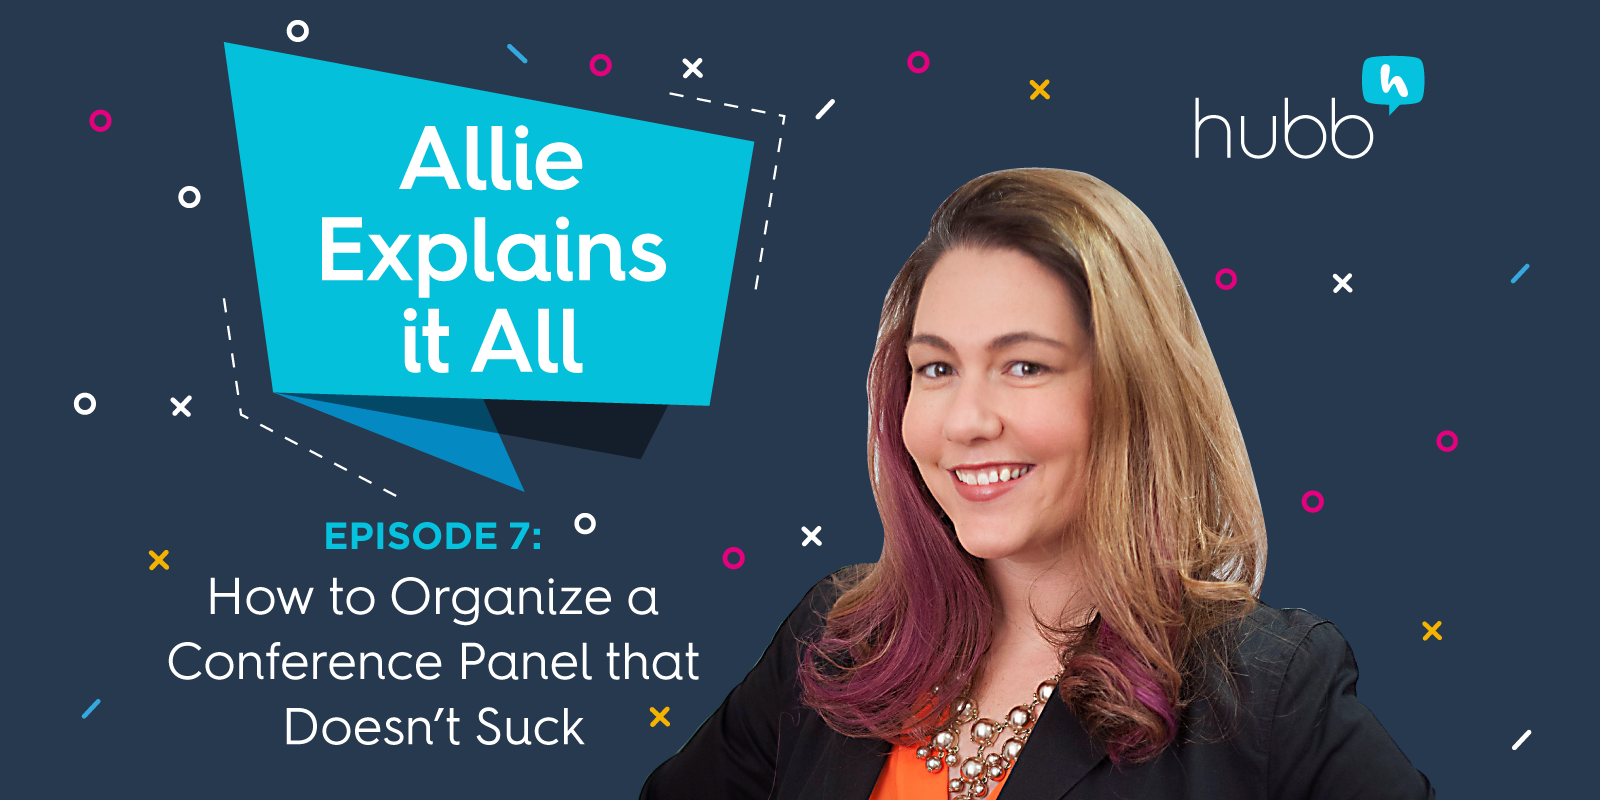 Allie Explains It All, Episode 7: How to Organize a Conference Panel That Doesn't Suck